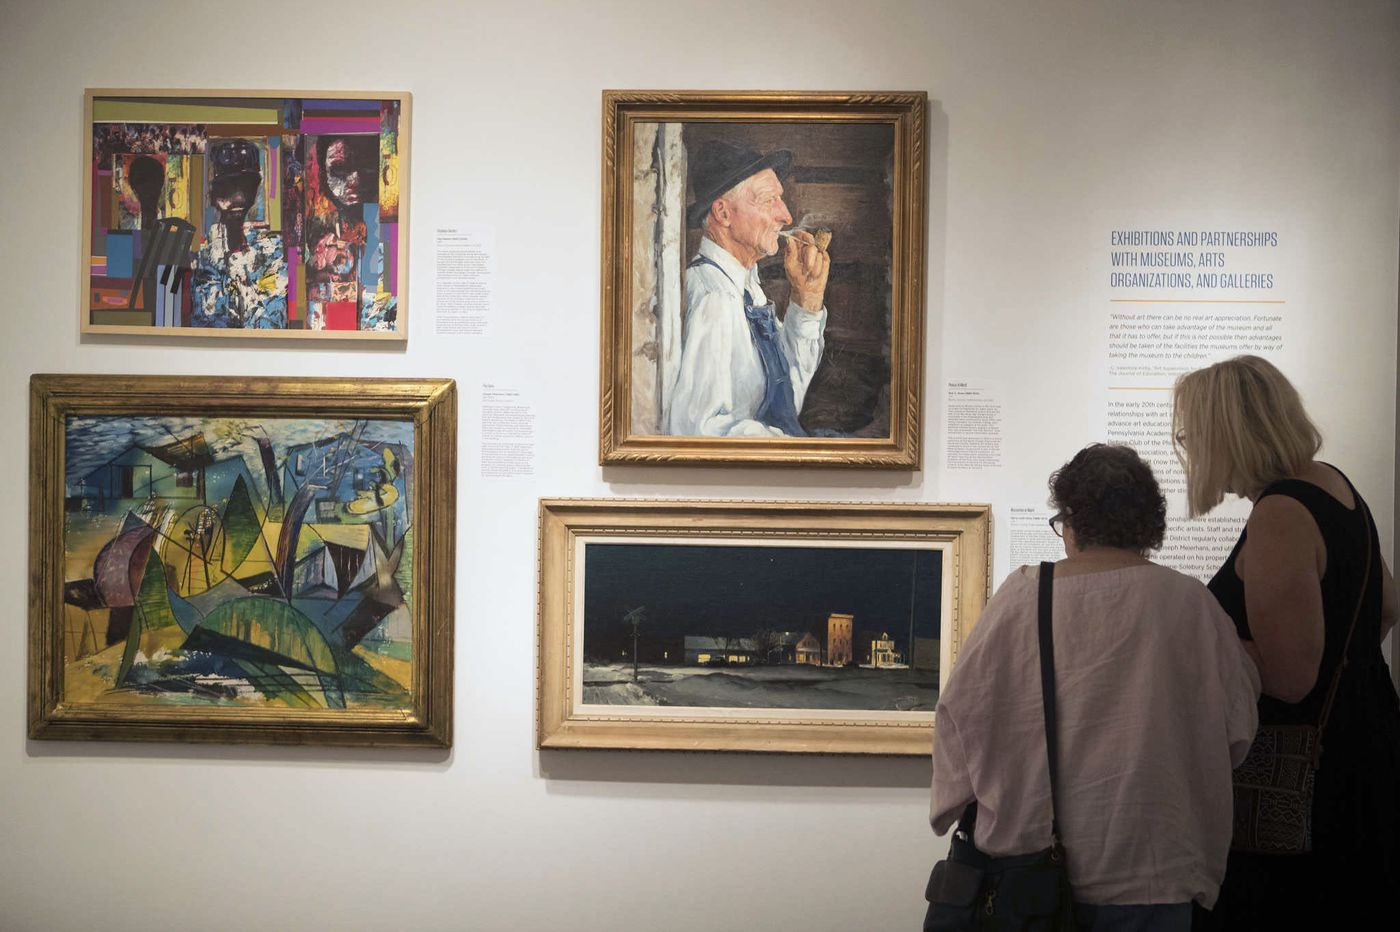 Removed in secret, hidden for years, Philly schools' art collection belongs in the public eye, officials now say